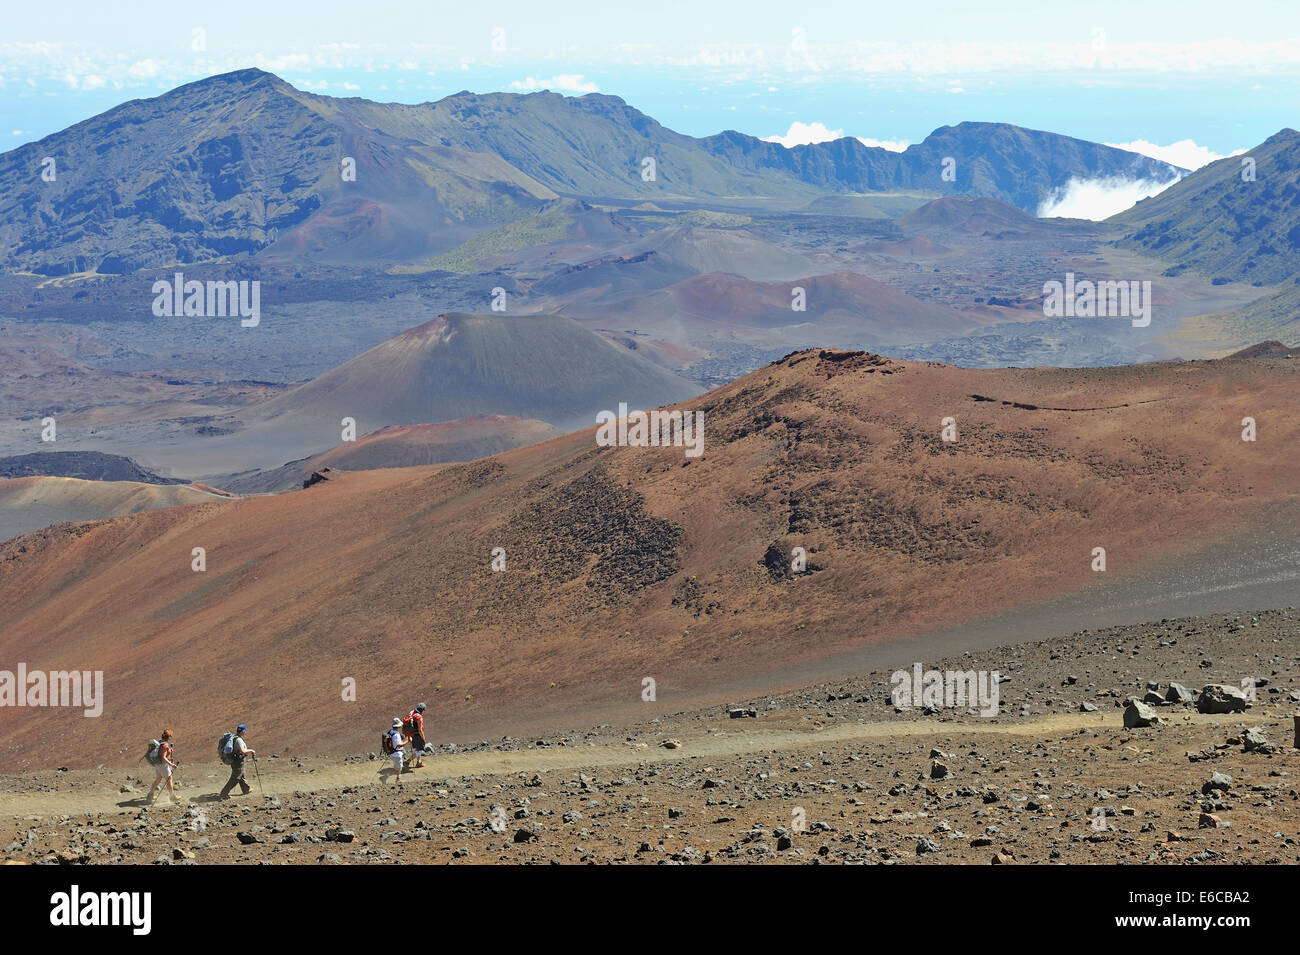 New York - Les randonneurs de l'Haleakala, cratère de Haleakala National Park, l'île de Maui. Photo Stock